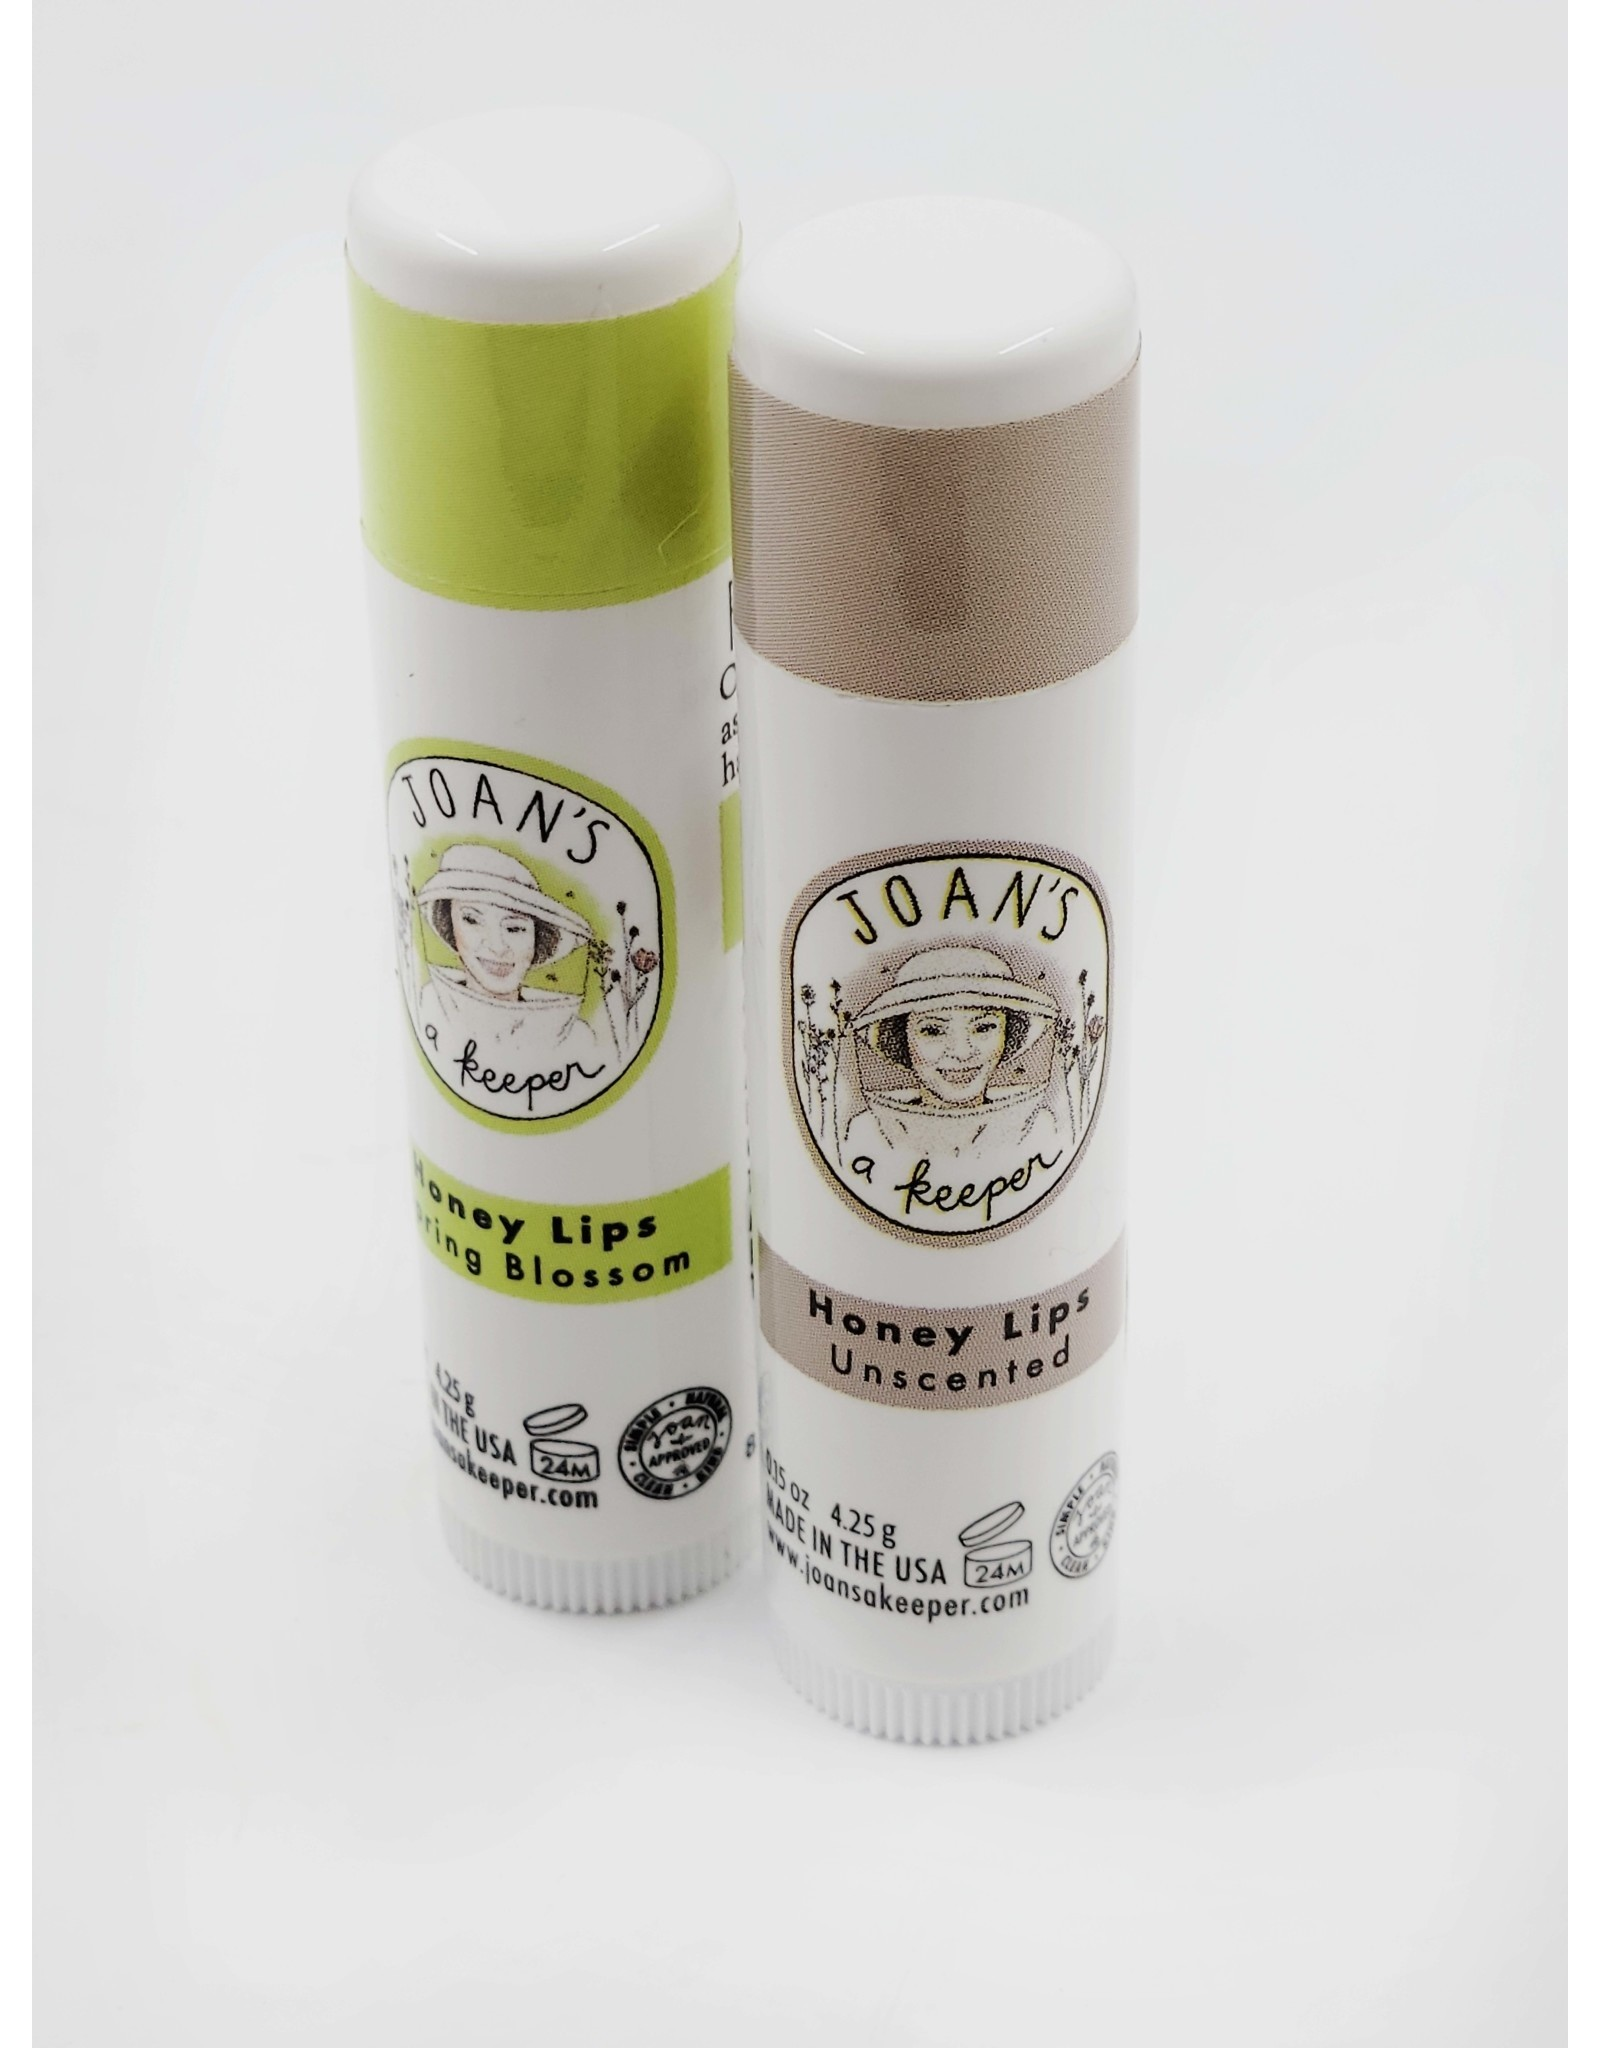 Joan's a Keeper Lip Balm